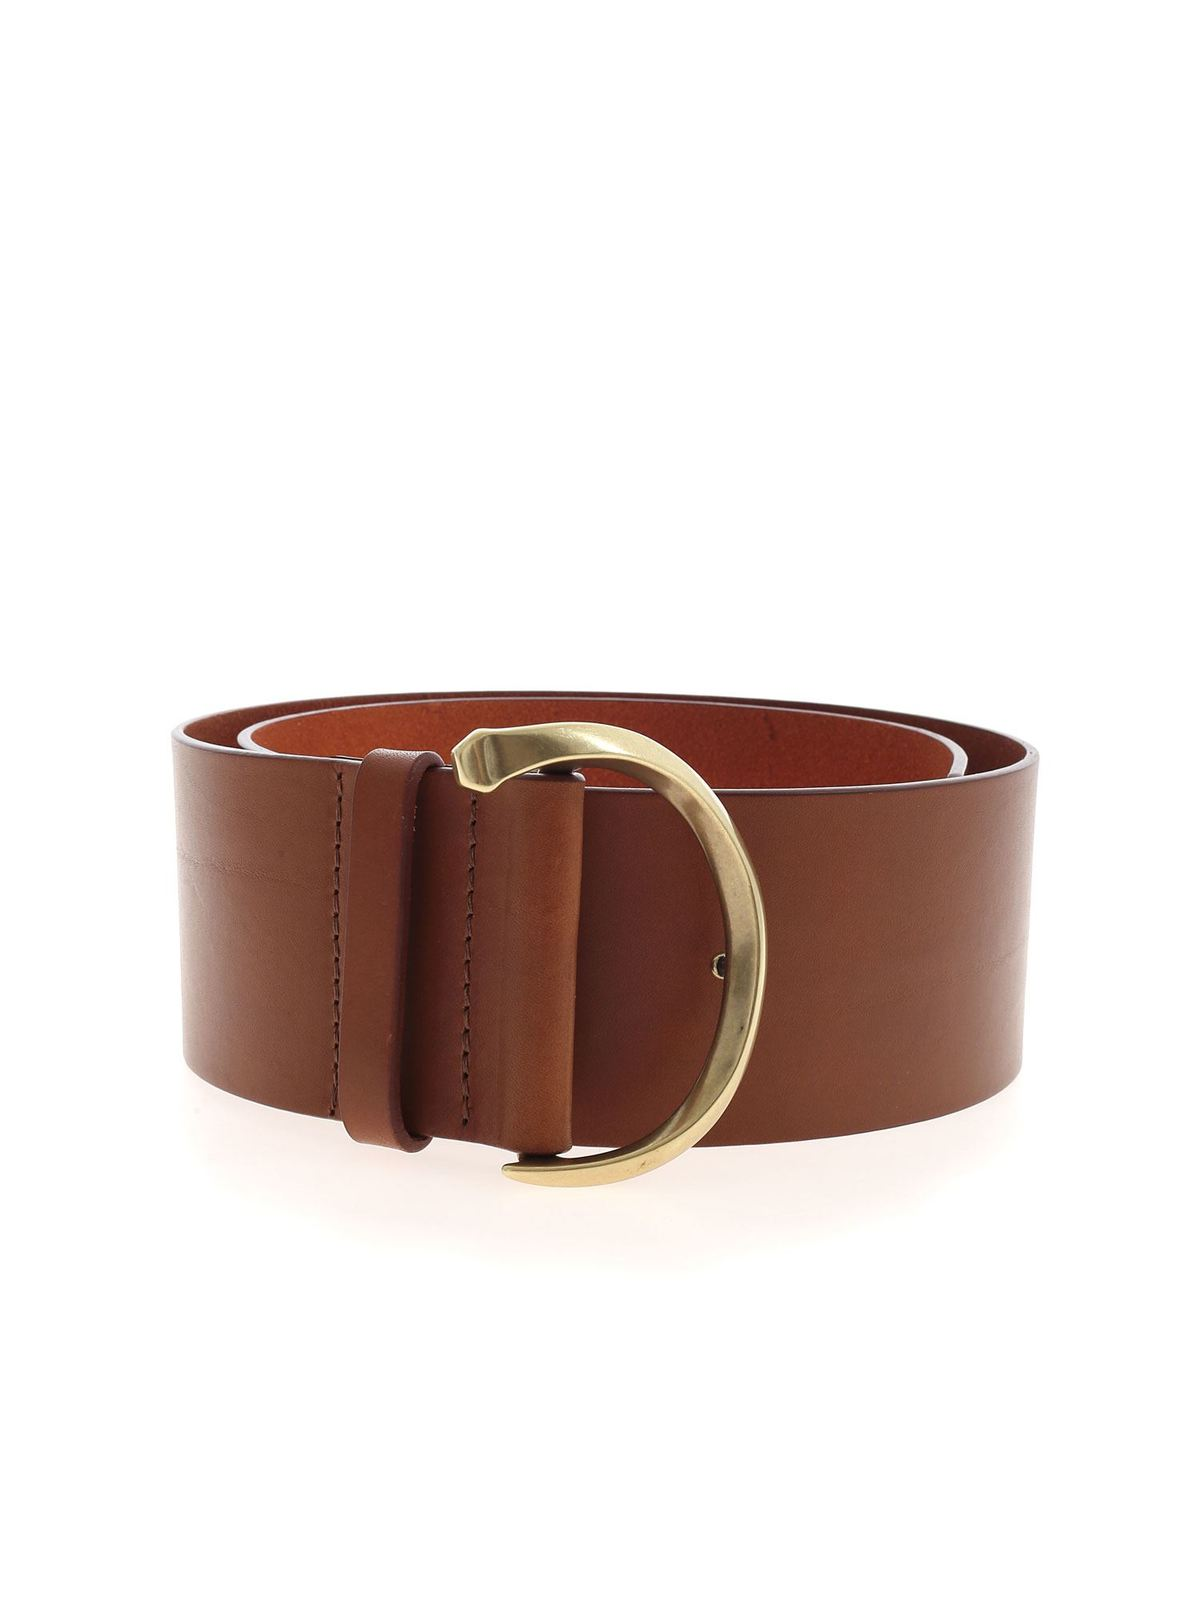 Orciani LEATHER BELT IN BROWN